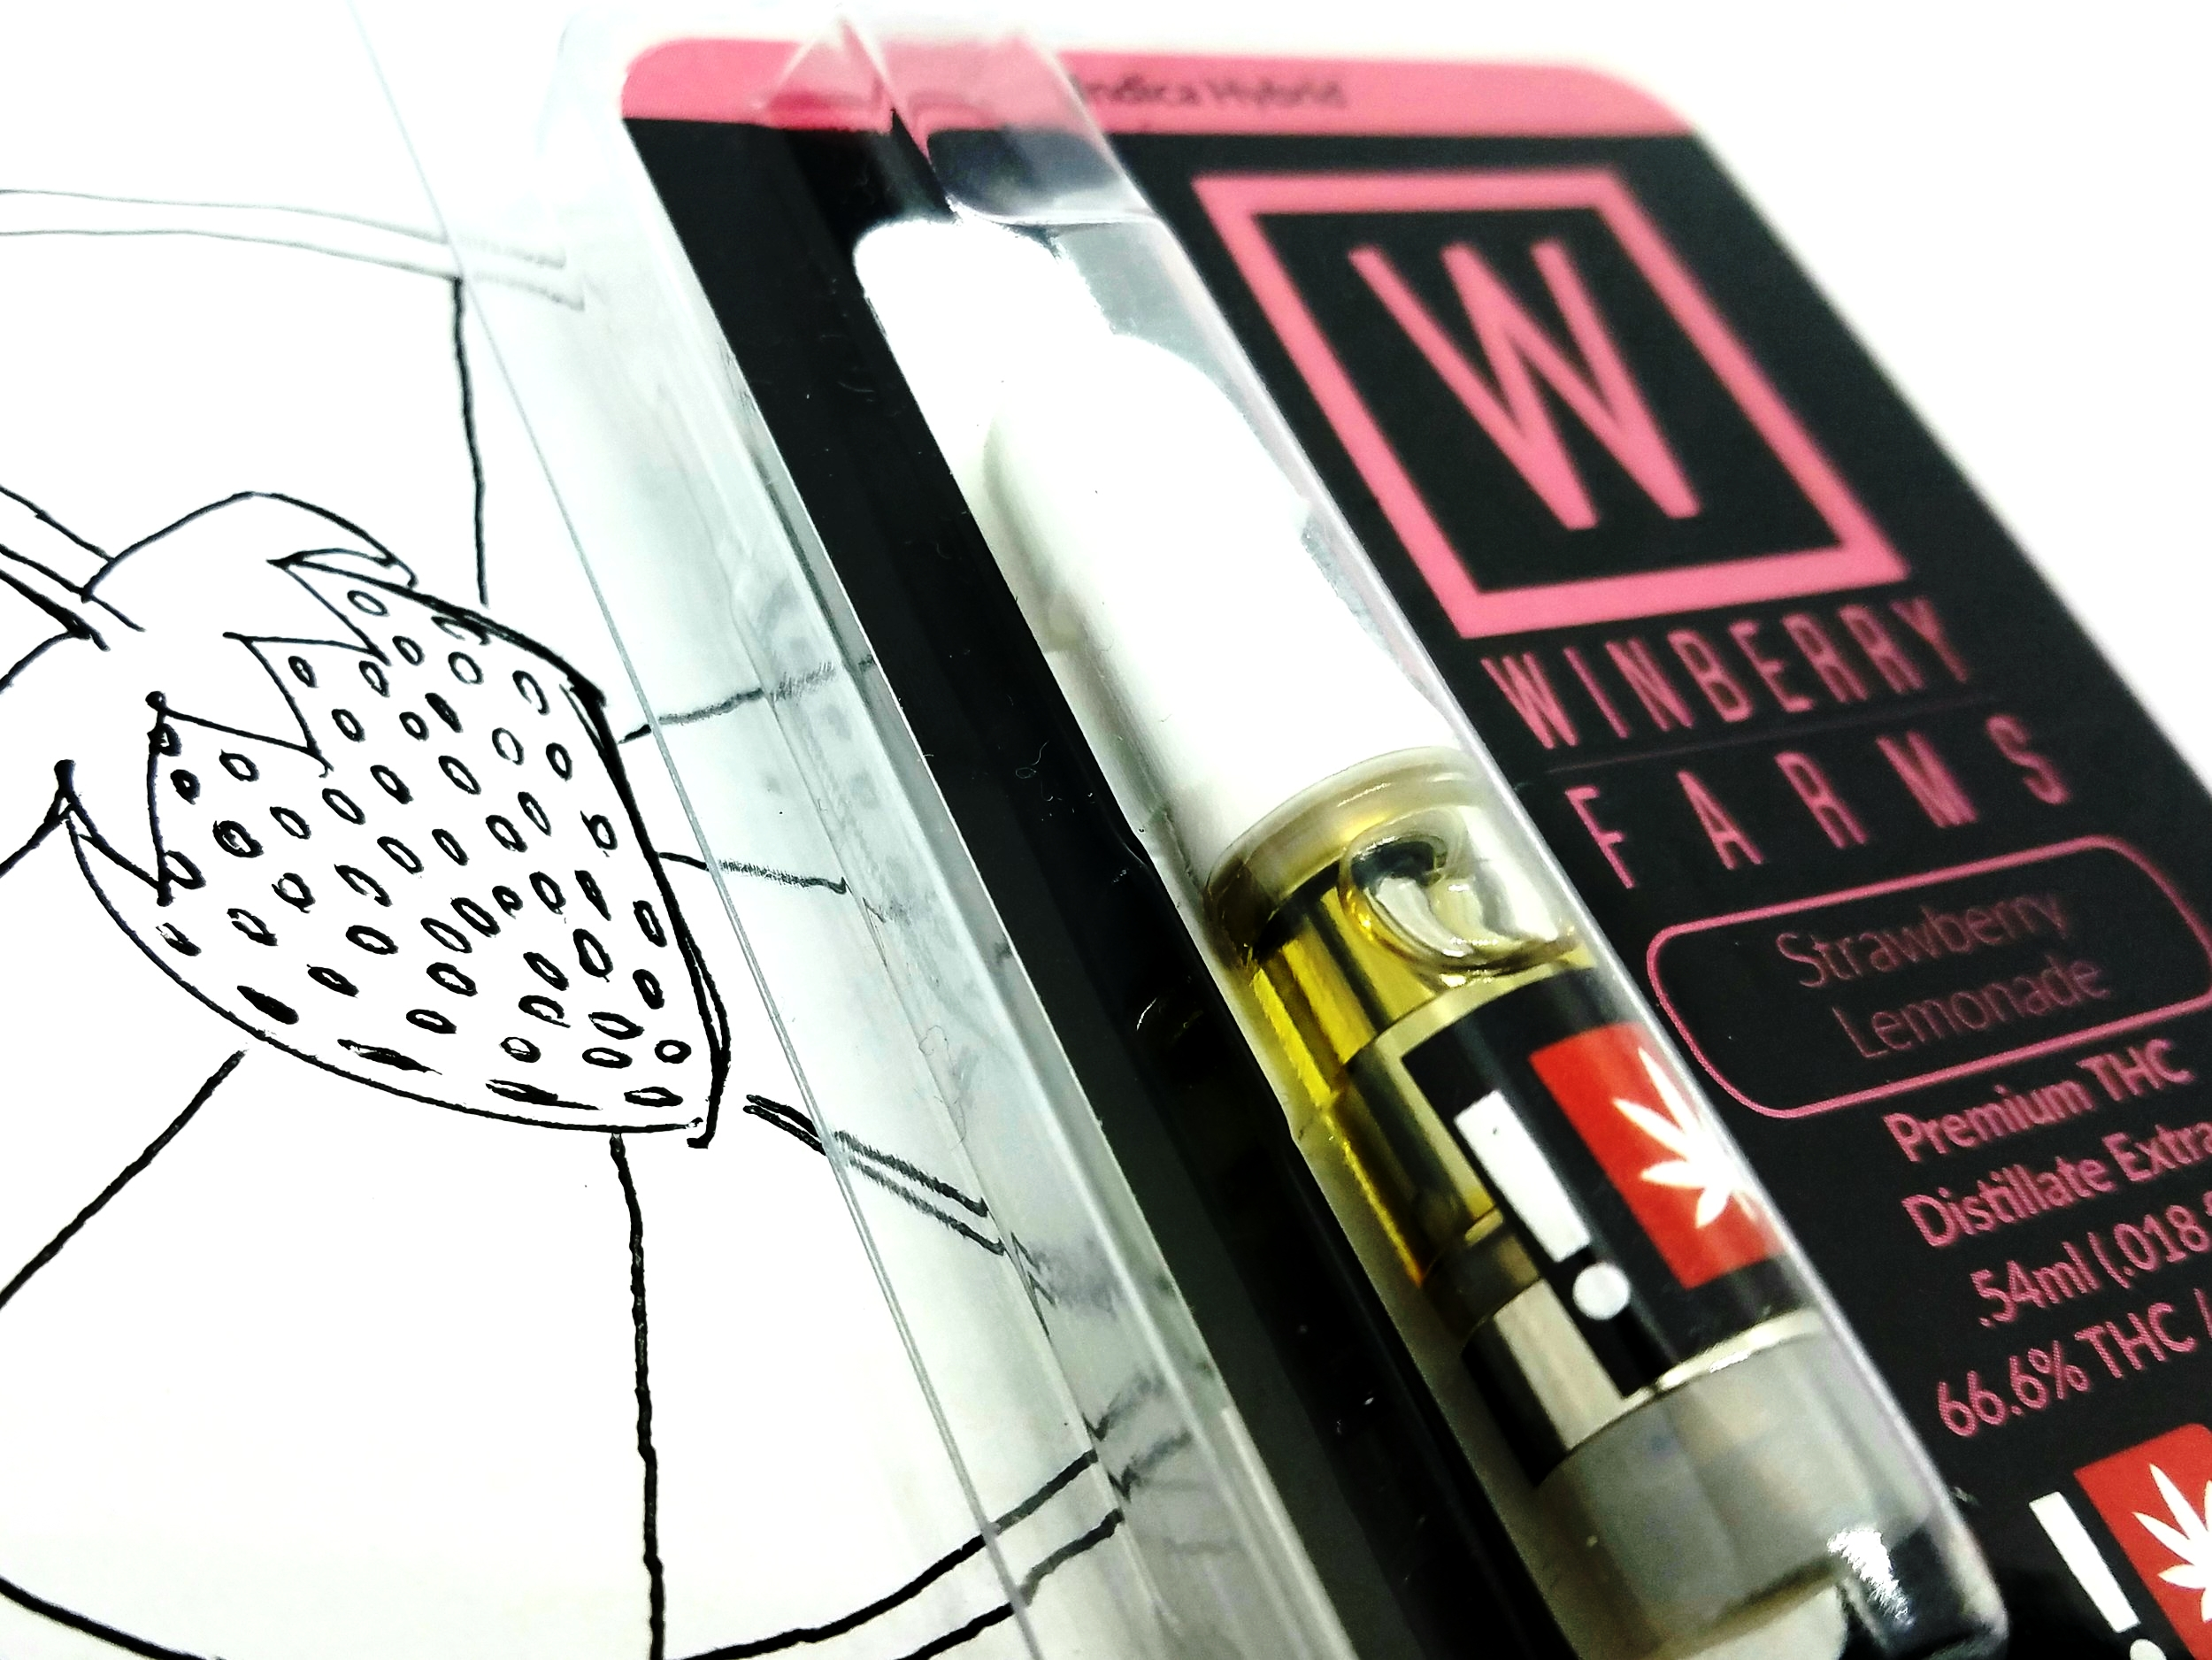 Strawberry Lemonade 1/2g distillate cartridge from Winberry Farms